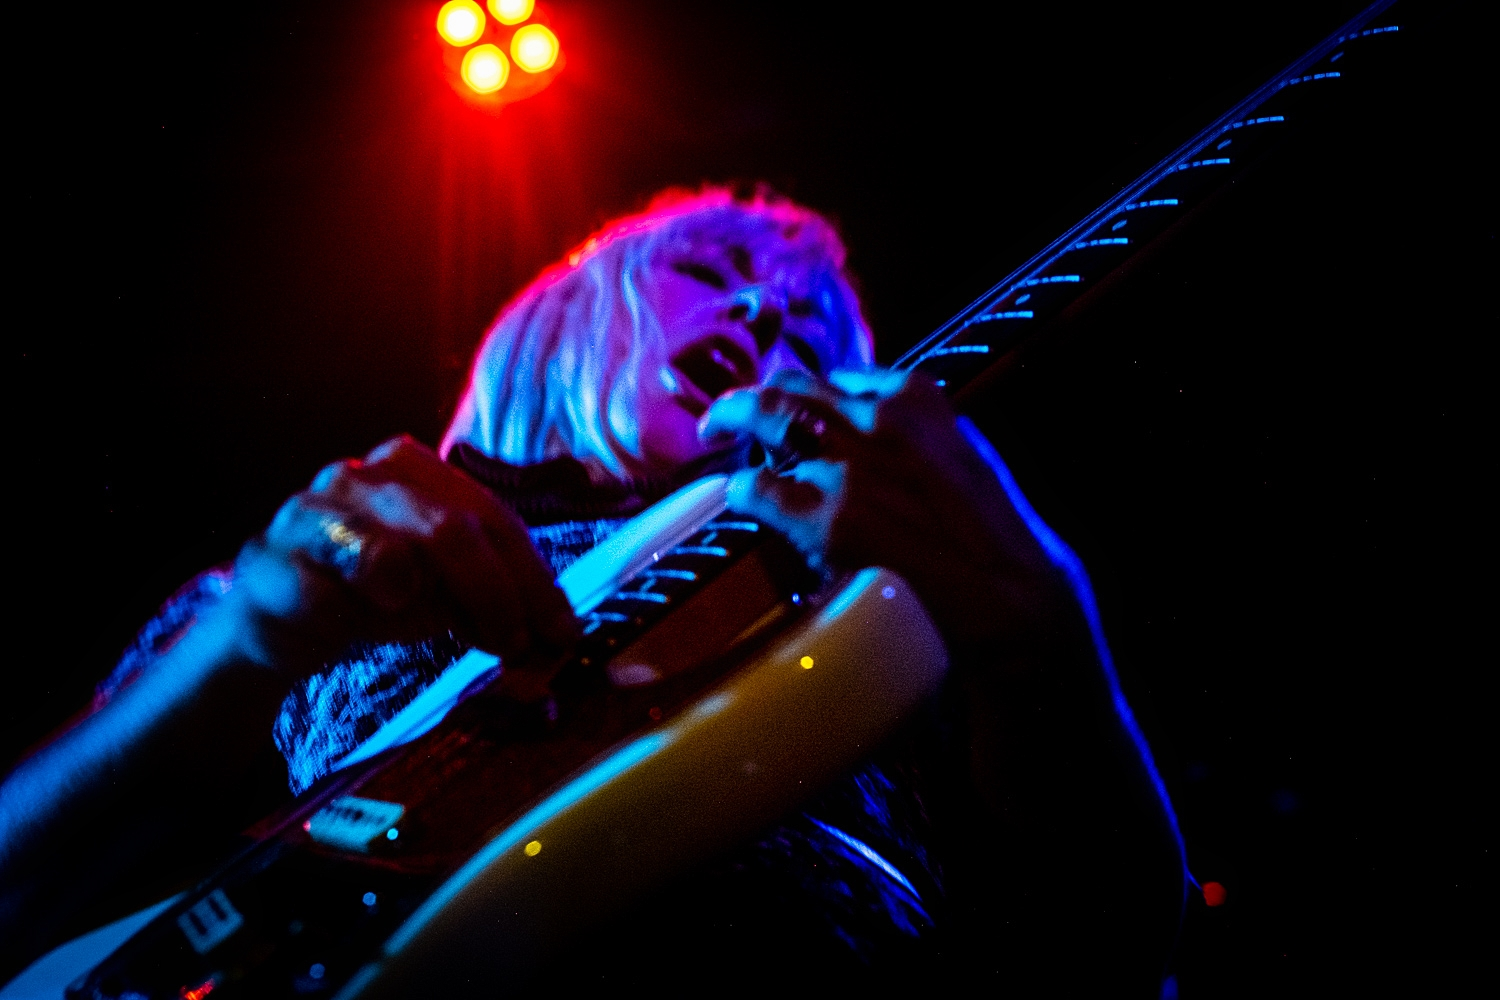 20180820-013-The-Joy-Formidable-@-Blue-Shell-Köln-col-Cred_Michael_Lamertz_@indie.and_.more_.jpg